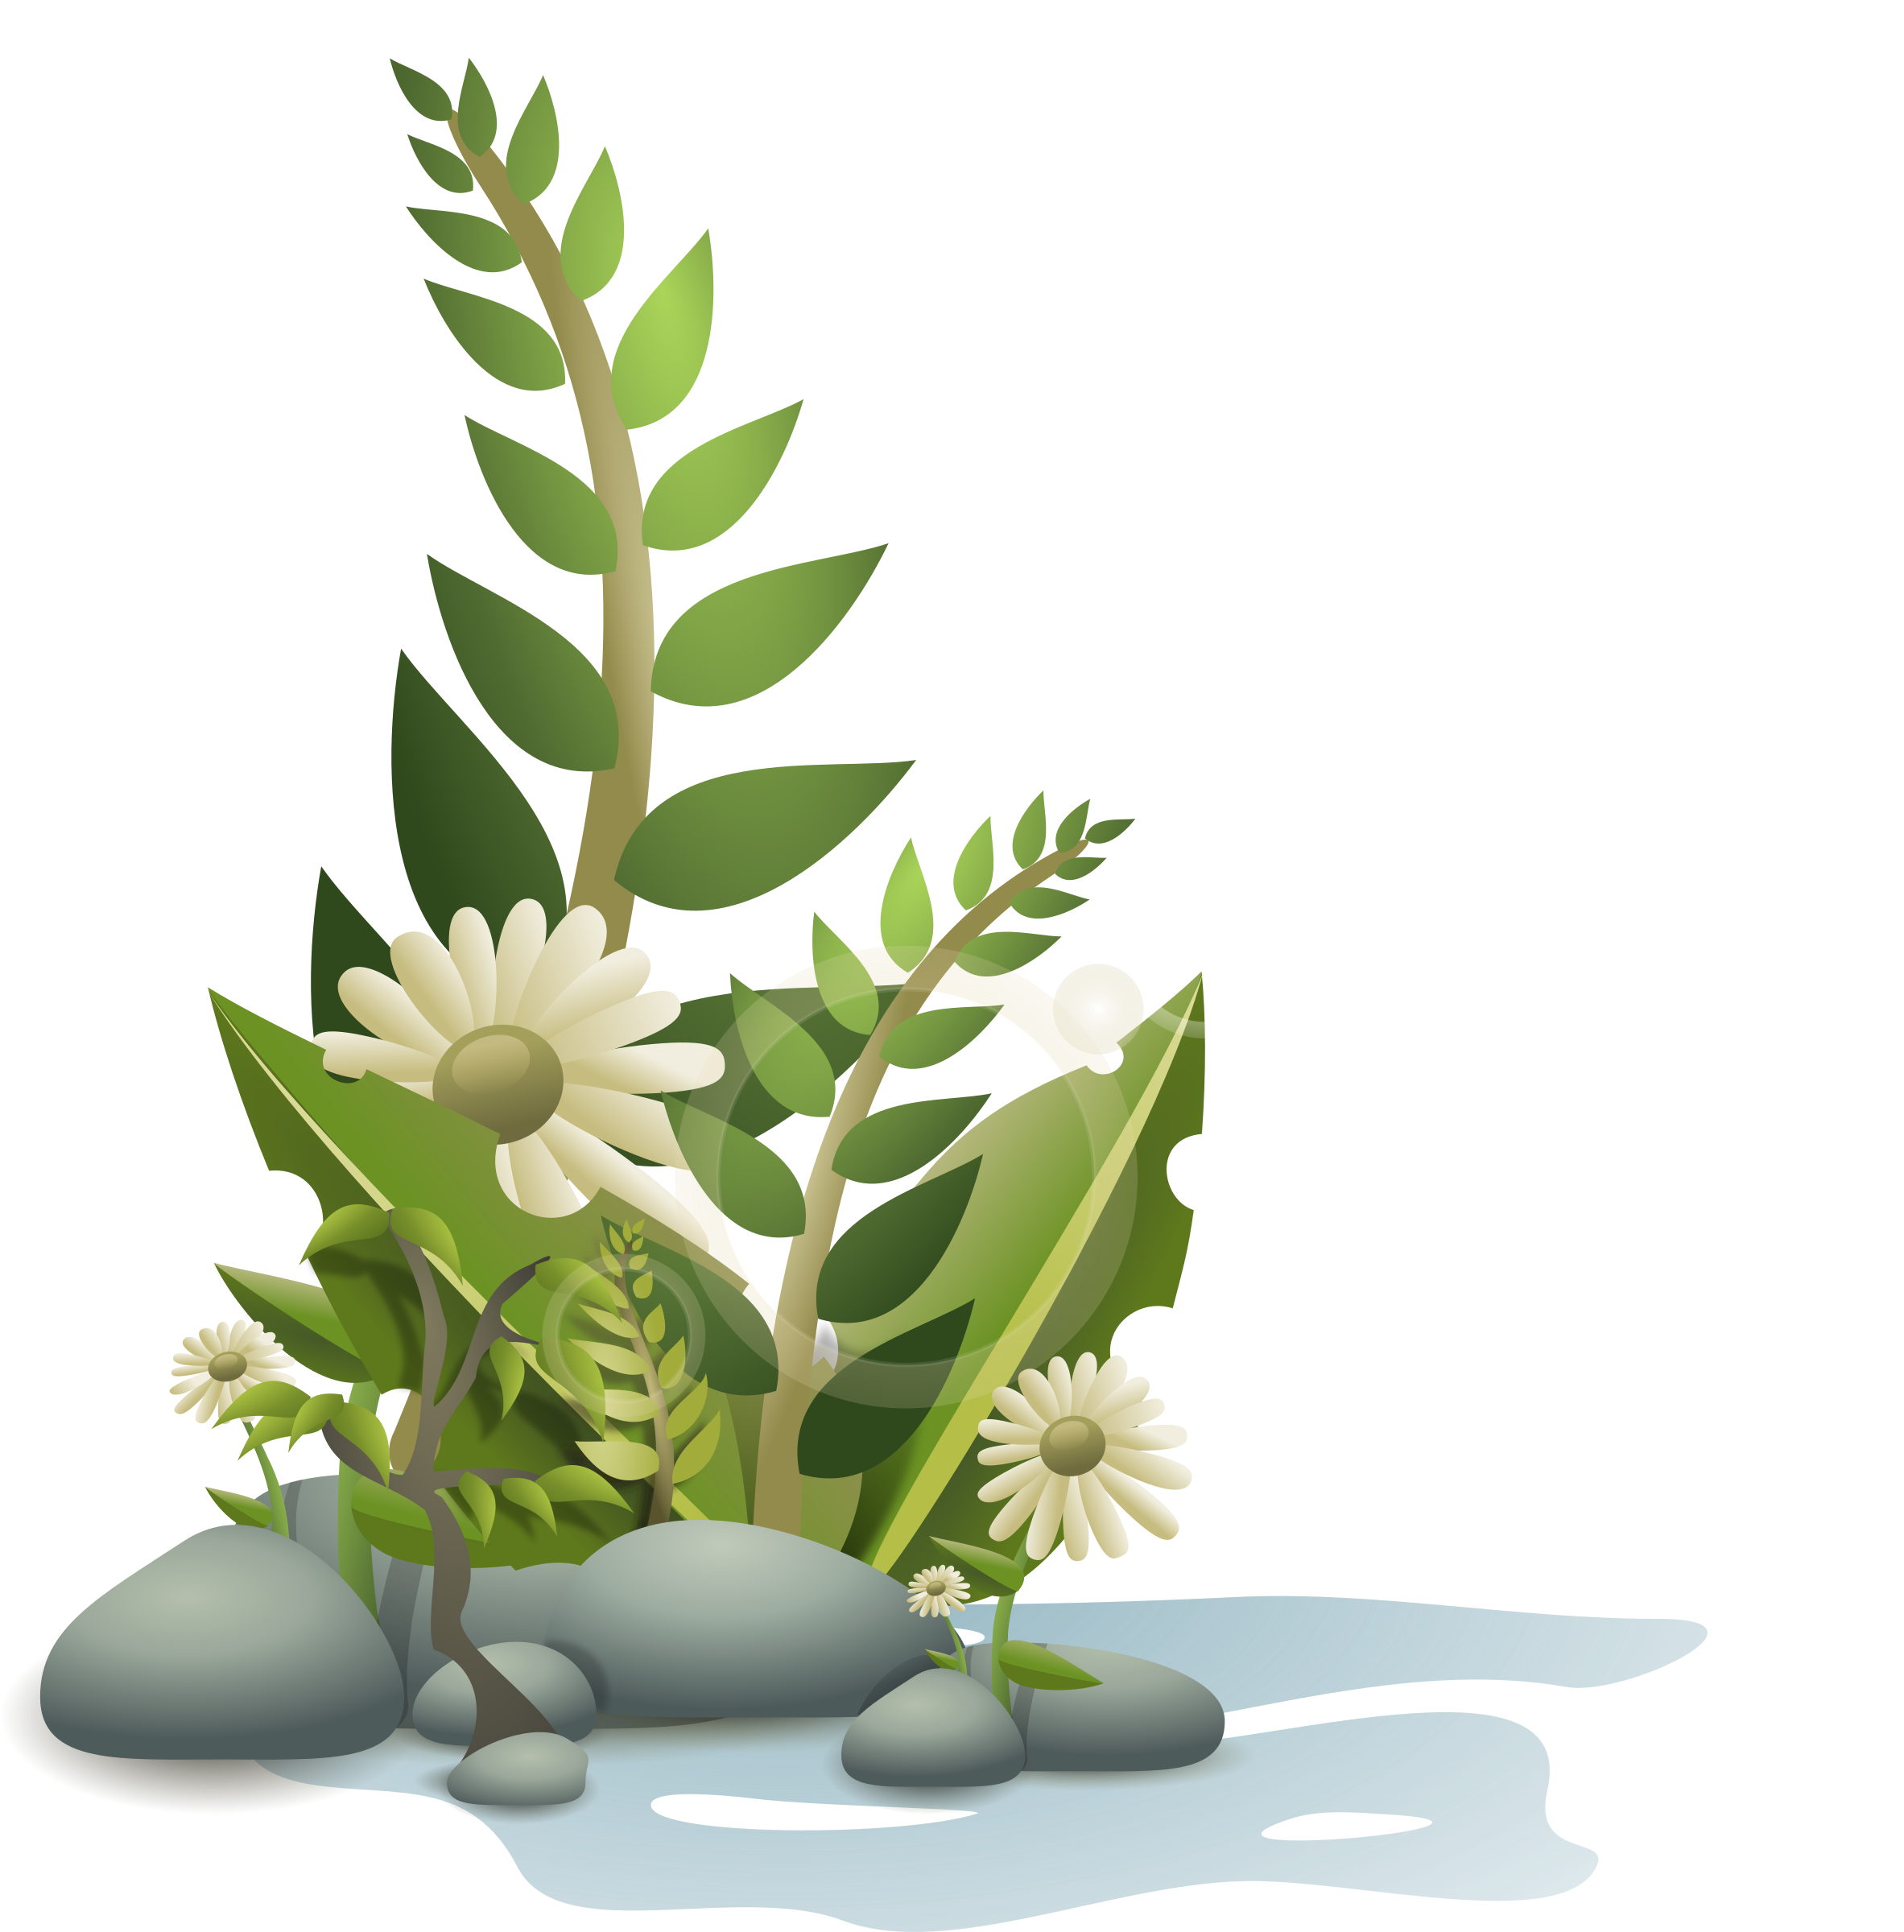 Flower plant clipart image transparent library Clipart - plants pebbles and flowers image transparent library